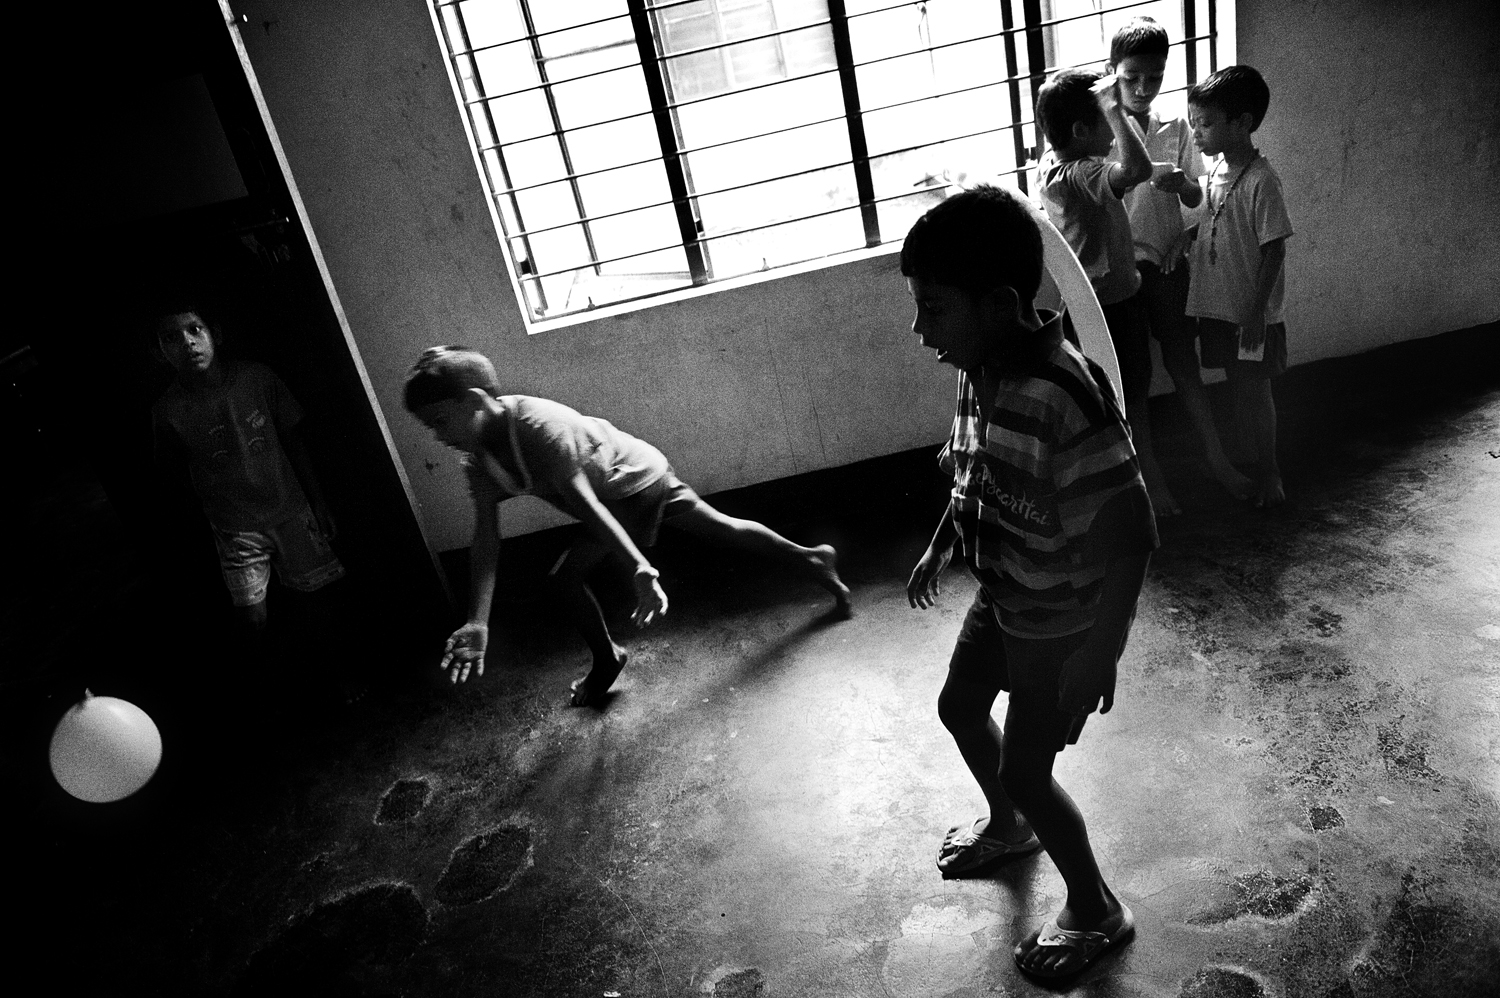 An orphanage in the city of Thodupuzha, Kerala. August 2009.